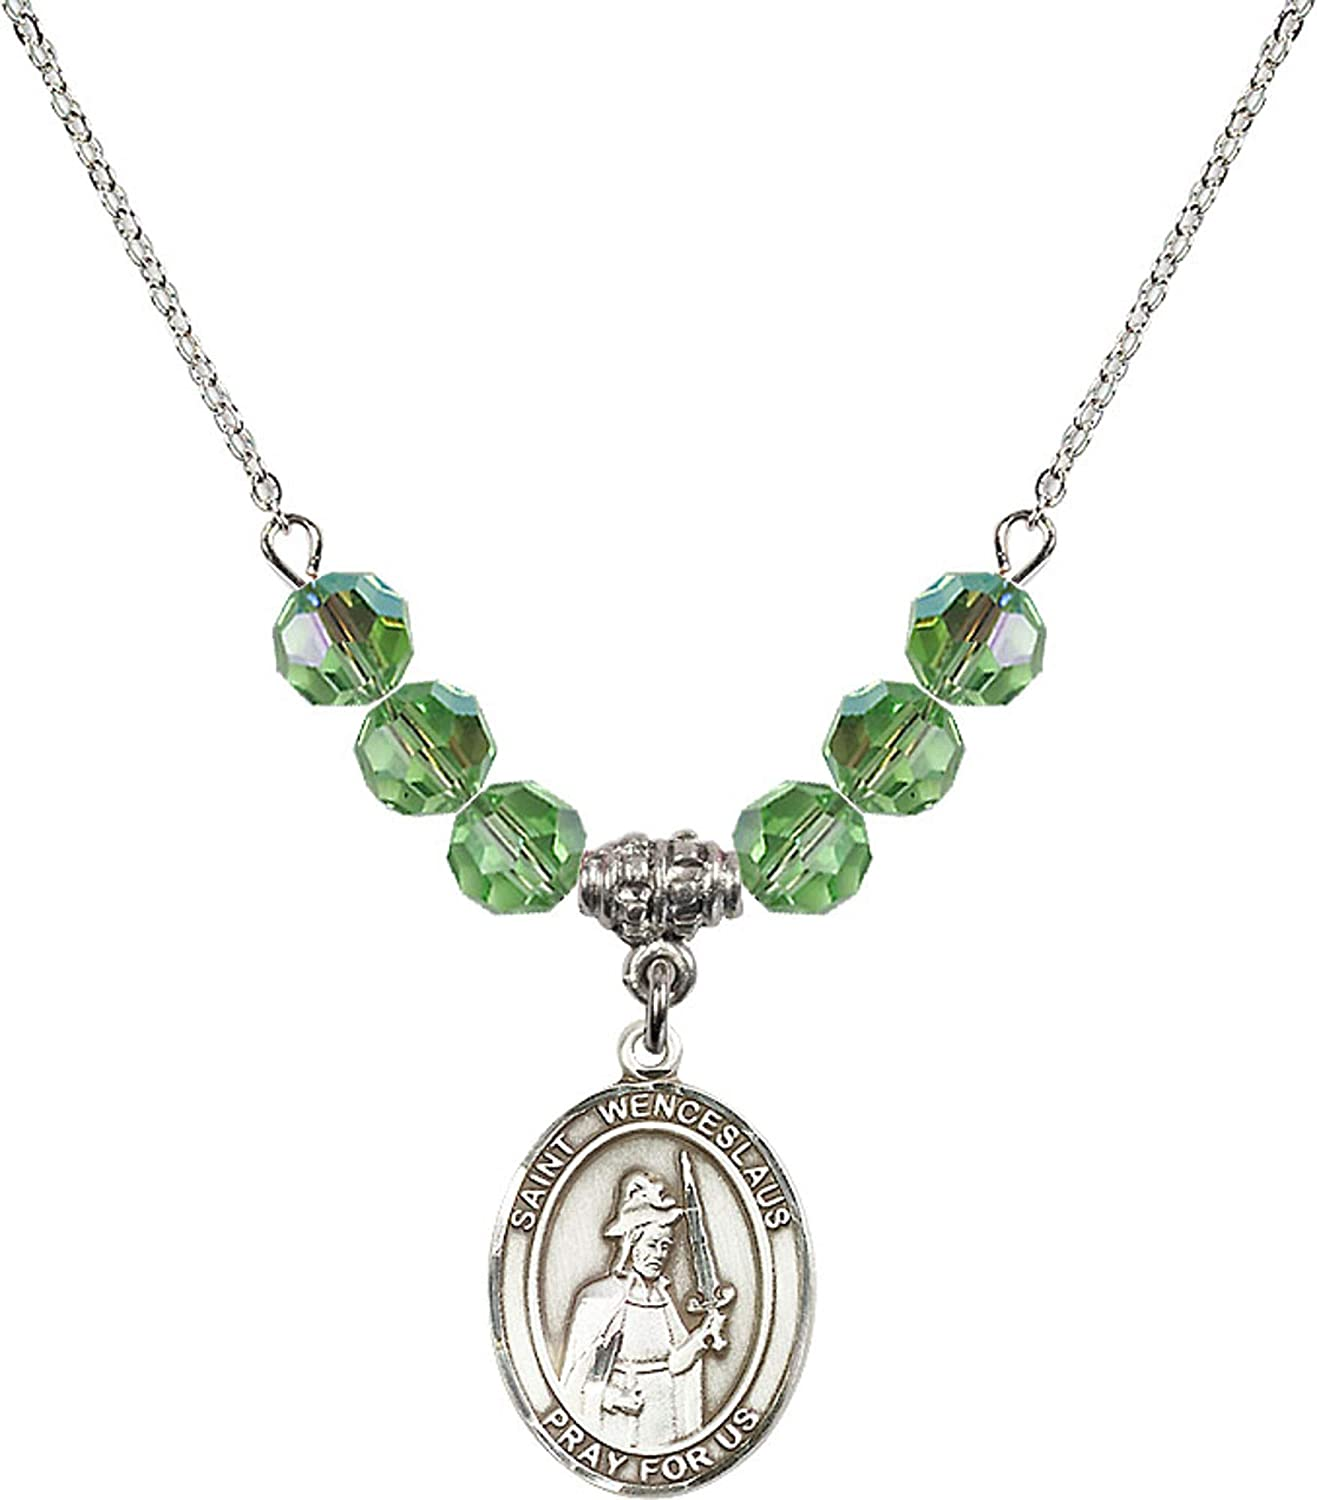 Bonyak Jewelry 18 Inch Rhodium Plated Necklace w// 6mm Green August Birth Month Stone Beads and Saint Wenceslaus Charm